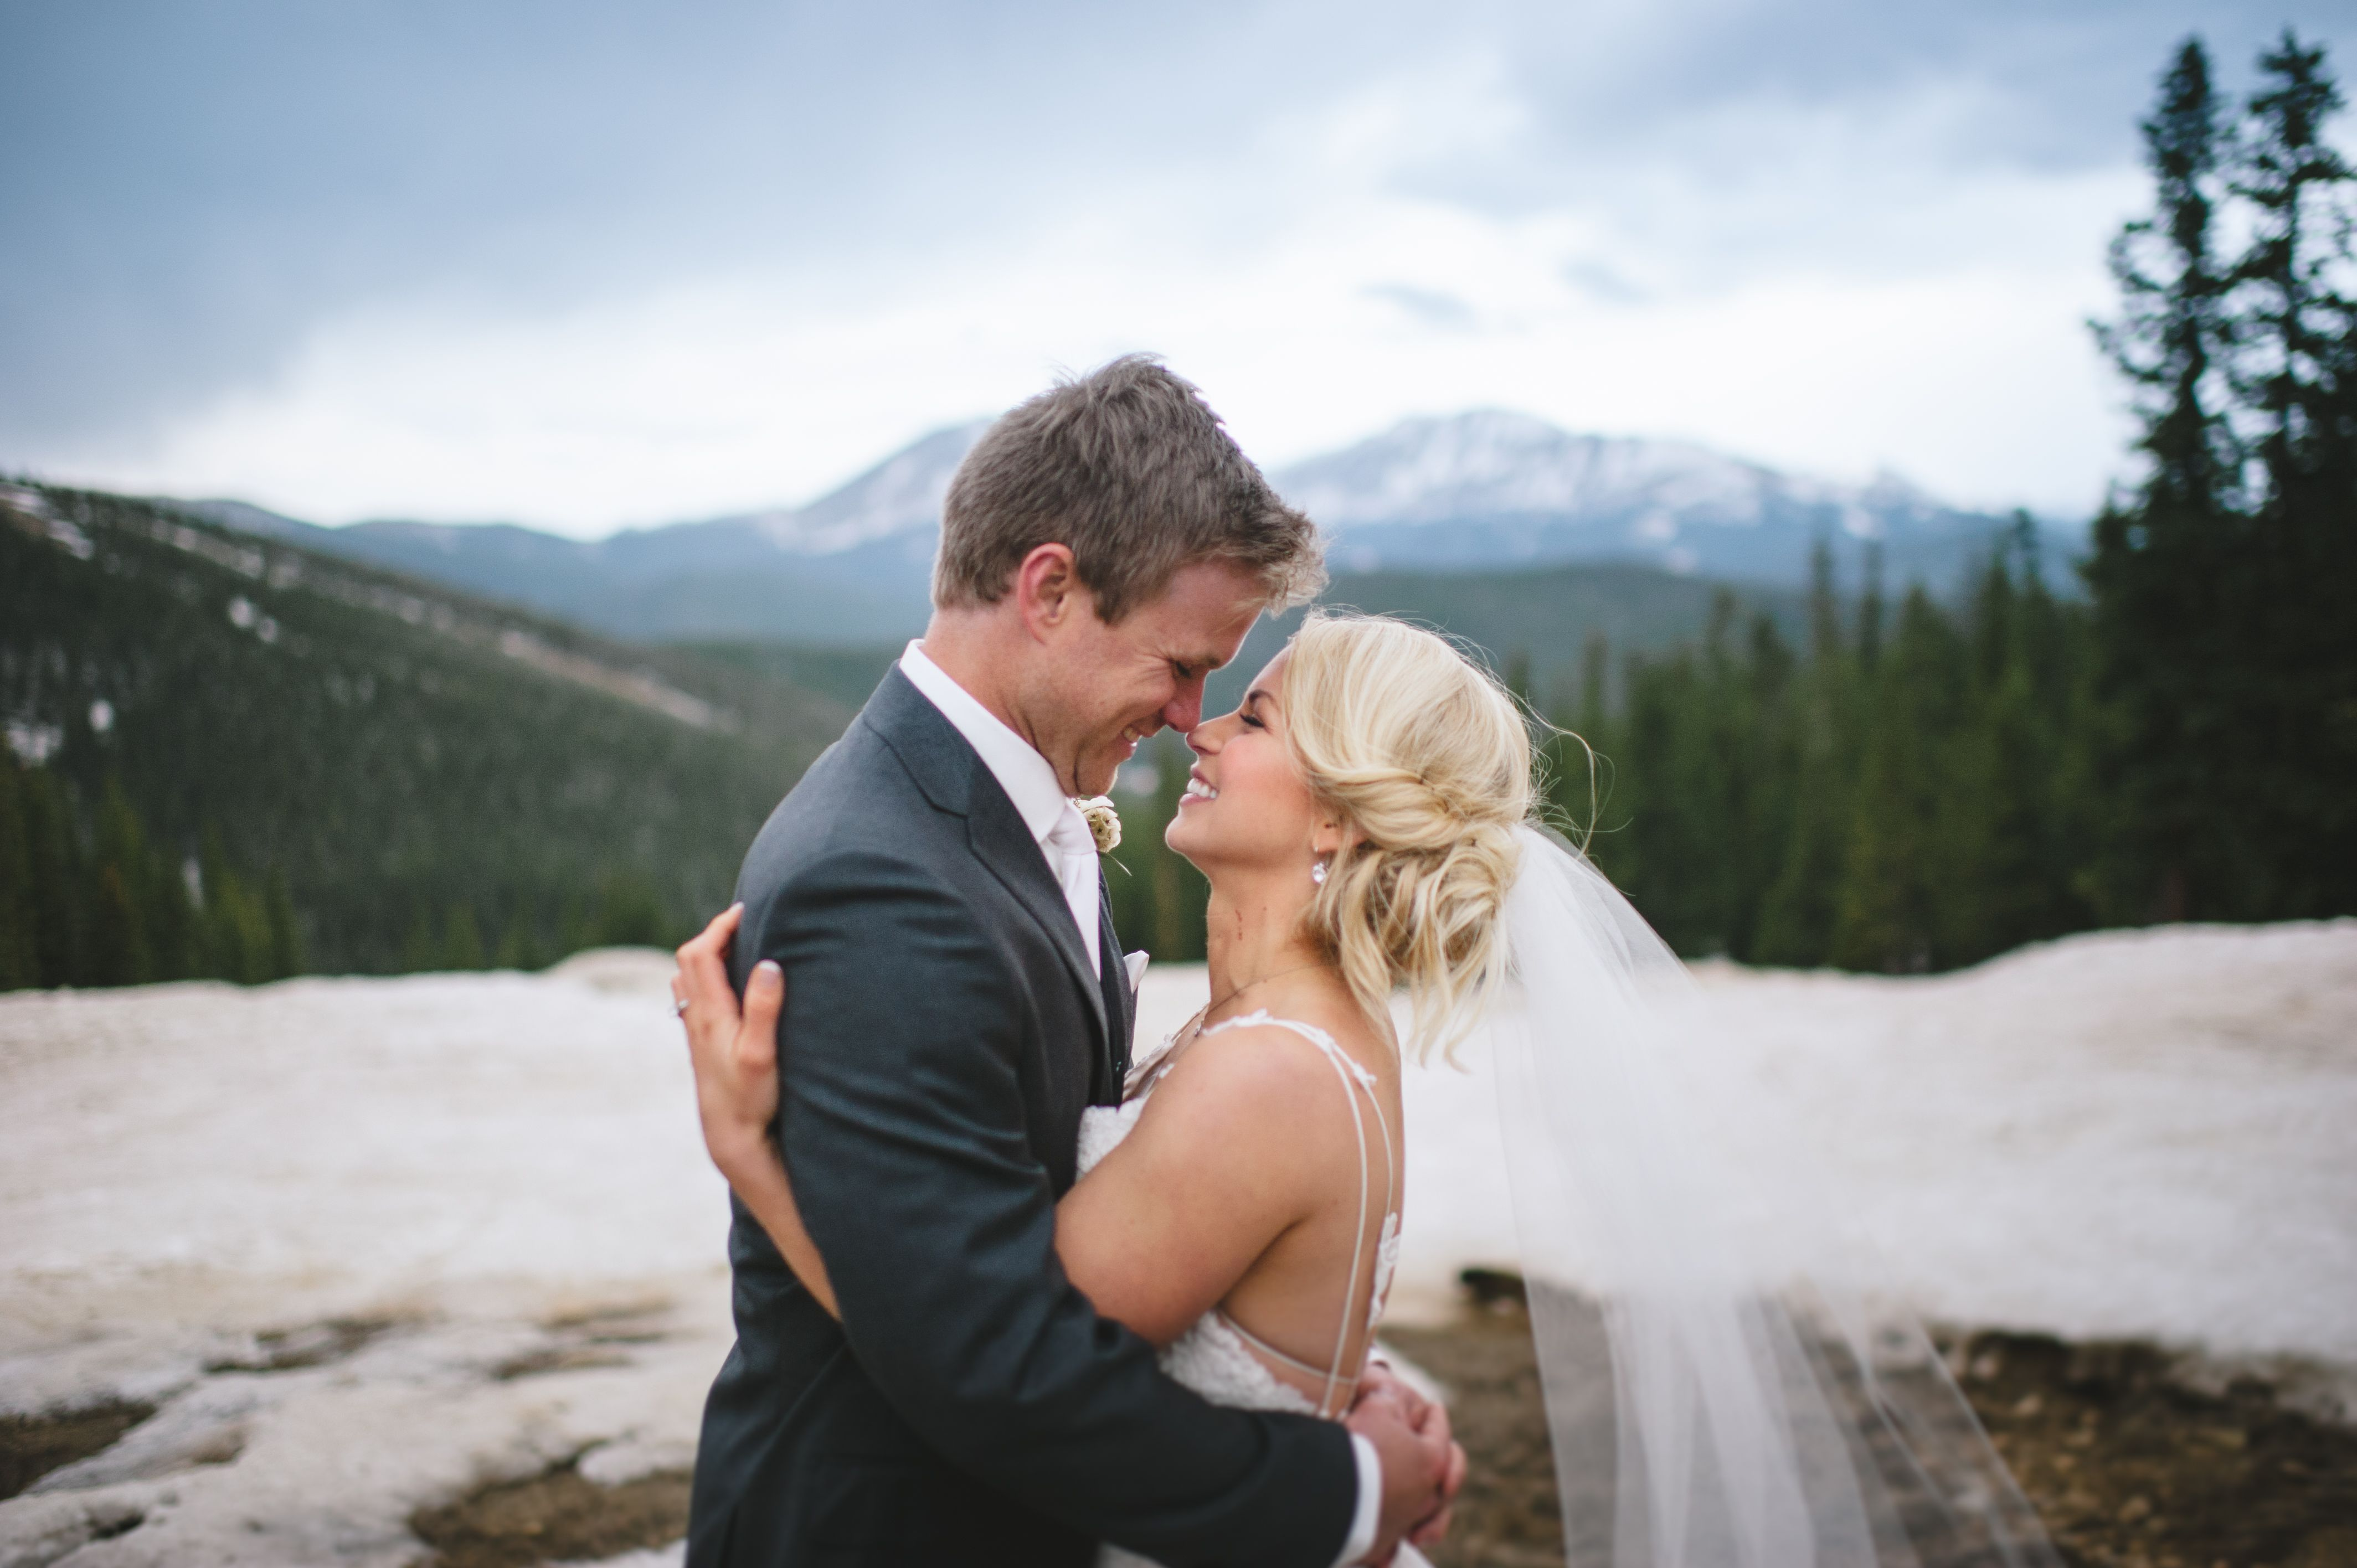 A Classic Mountain Wedding at Timber Ridge Lodge in Ouray